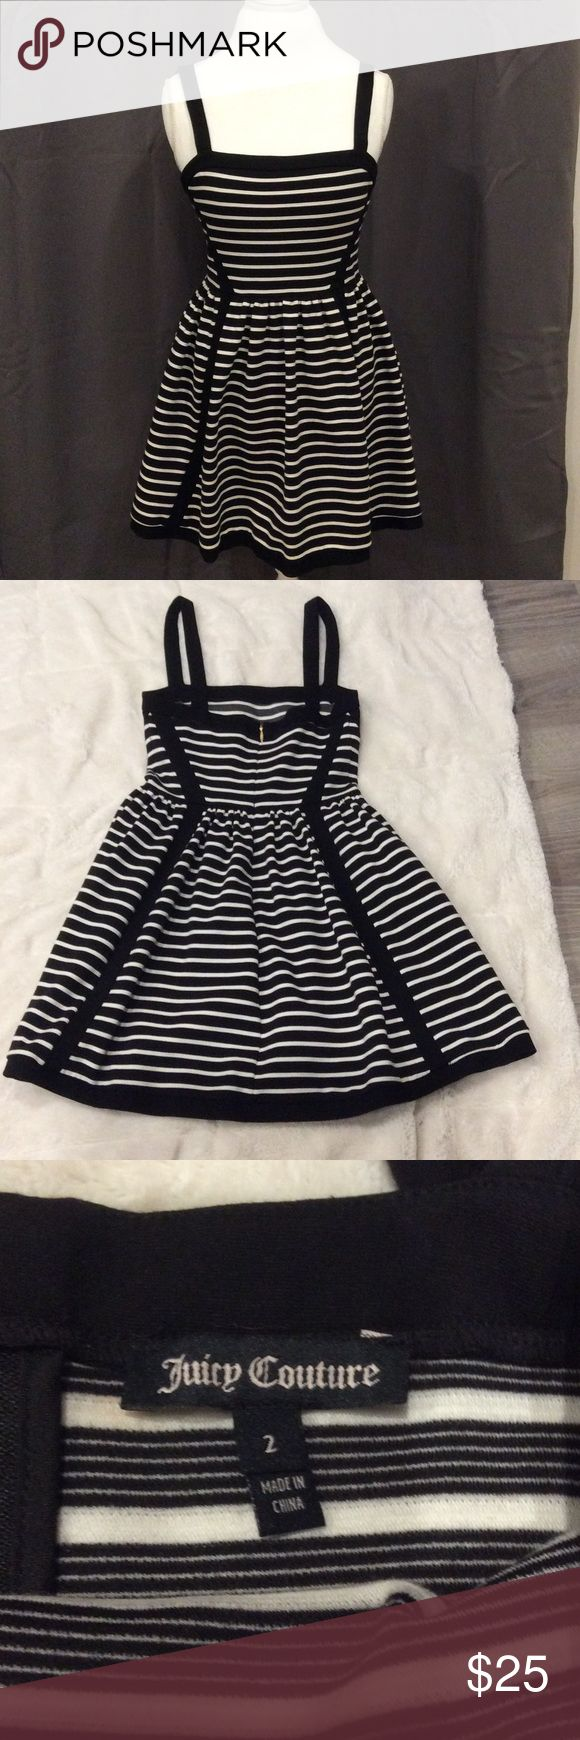 Juicy Couture party dress 🎀 Juicy Couture black and white stripes party dress. Perfect for a night out or a party. In great condition! No discoloration, no rips or holes Juicy Couture Dresses